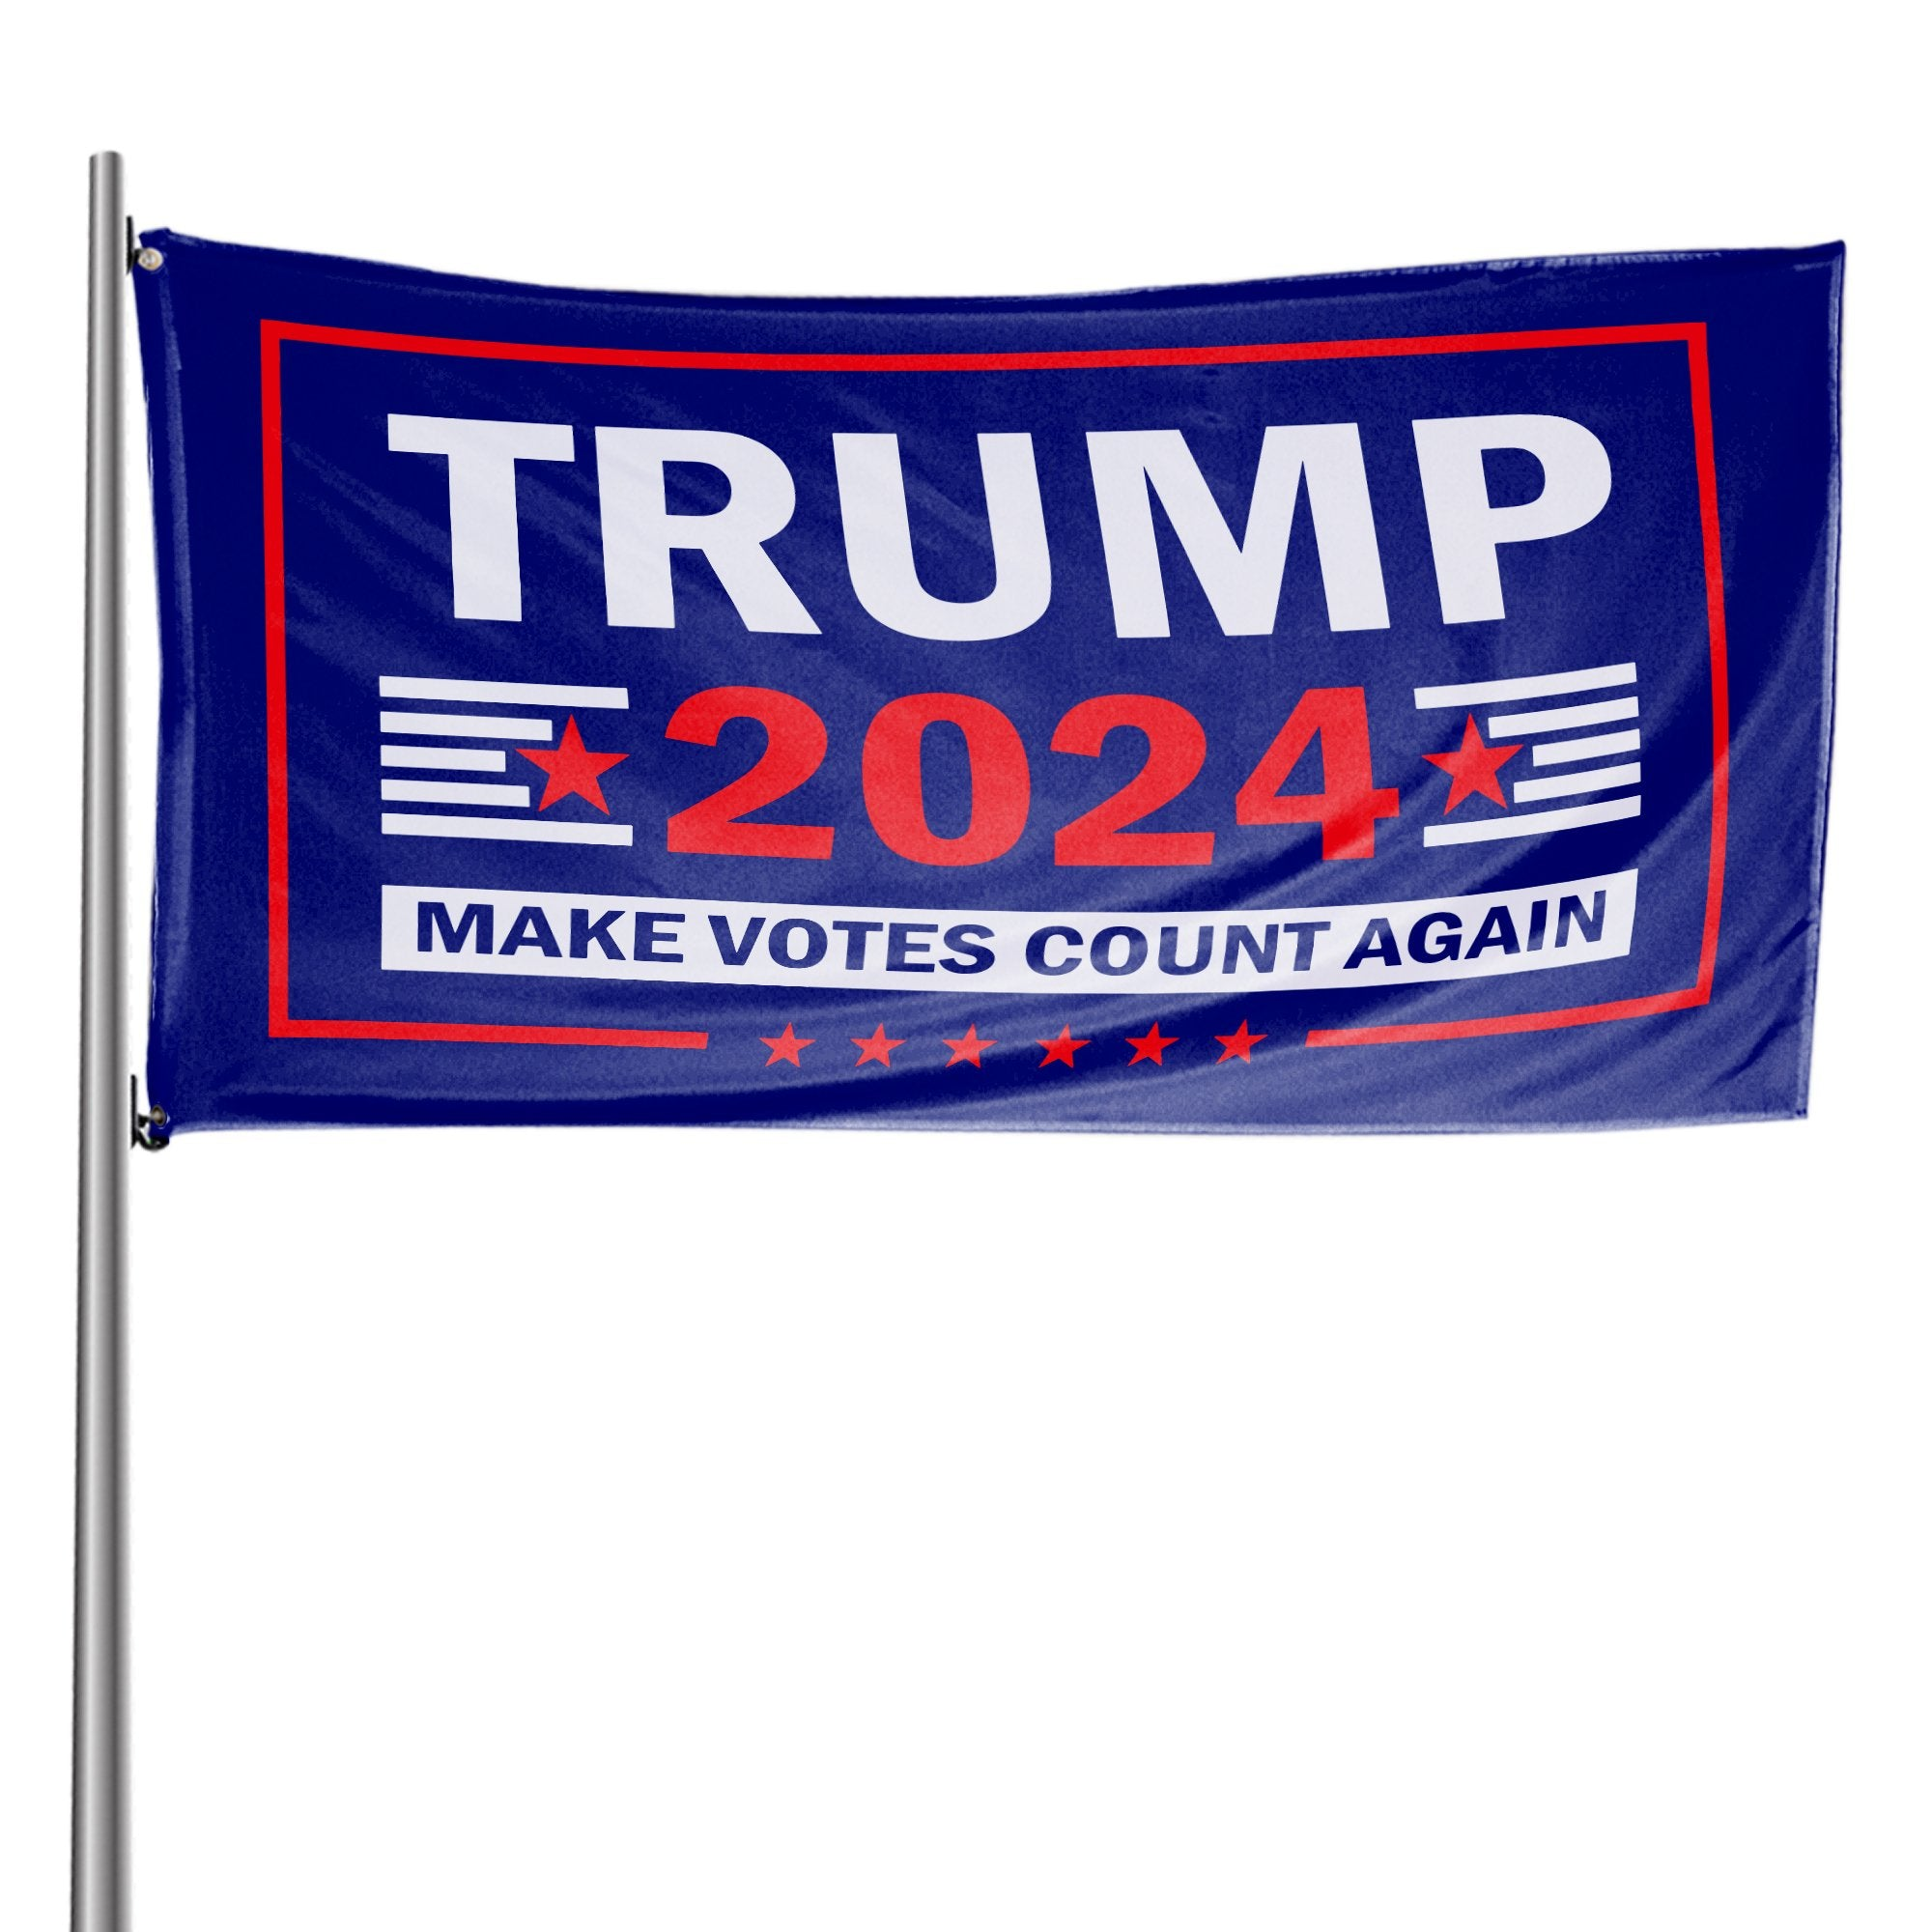 Trump 2024 Make Votes Count Again & West Virginia For Trump 3 x 5 Flag Bundle